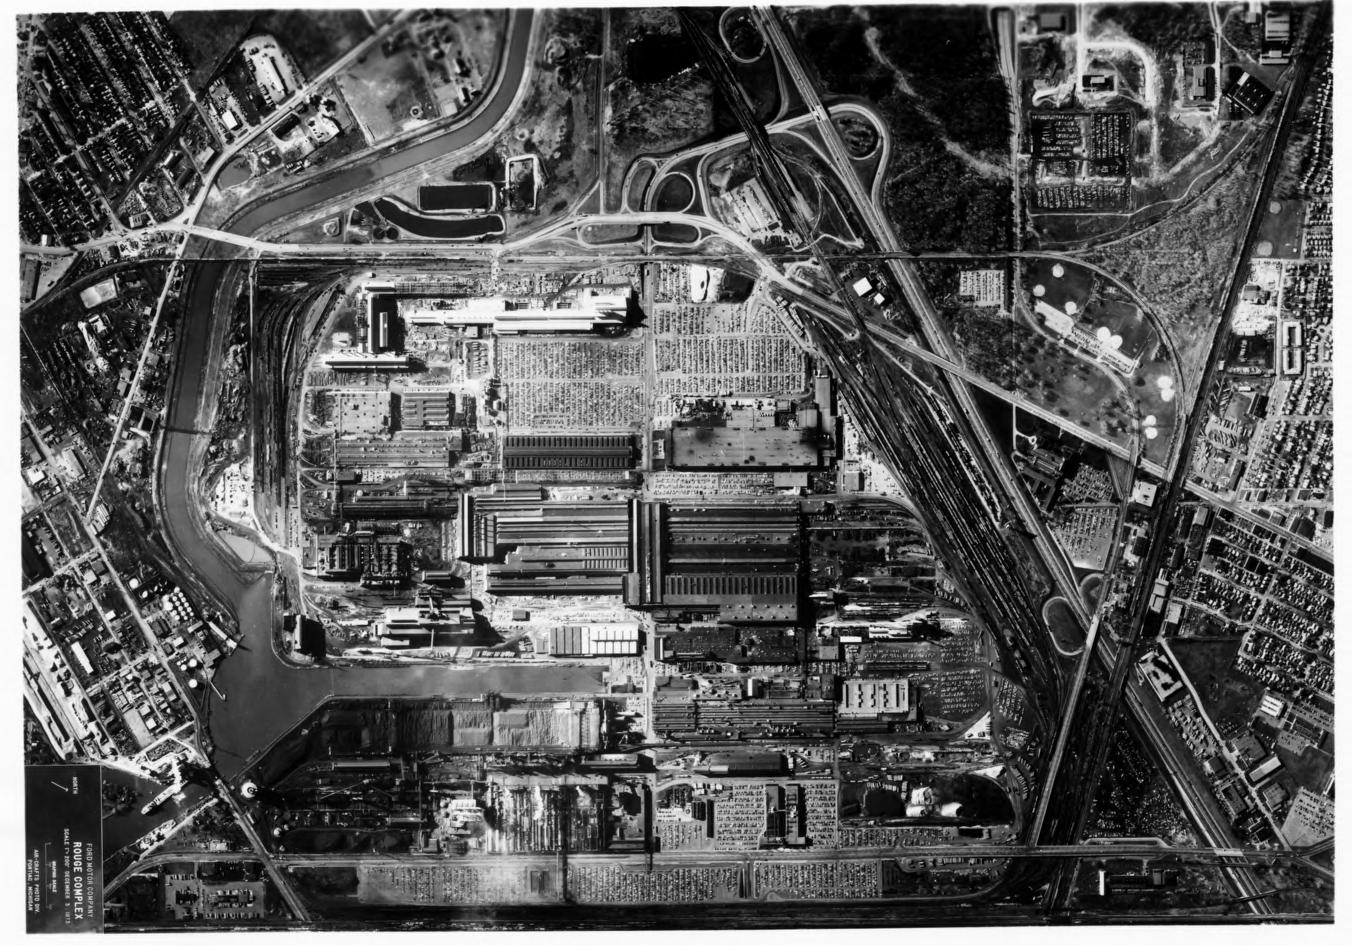 Ford River Rouge Plant Aerial view 1975